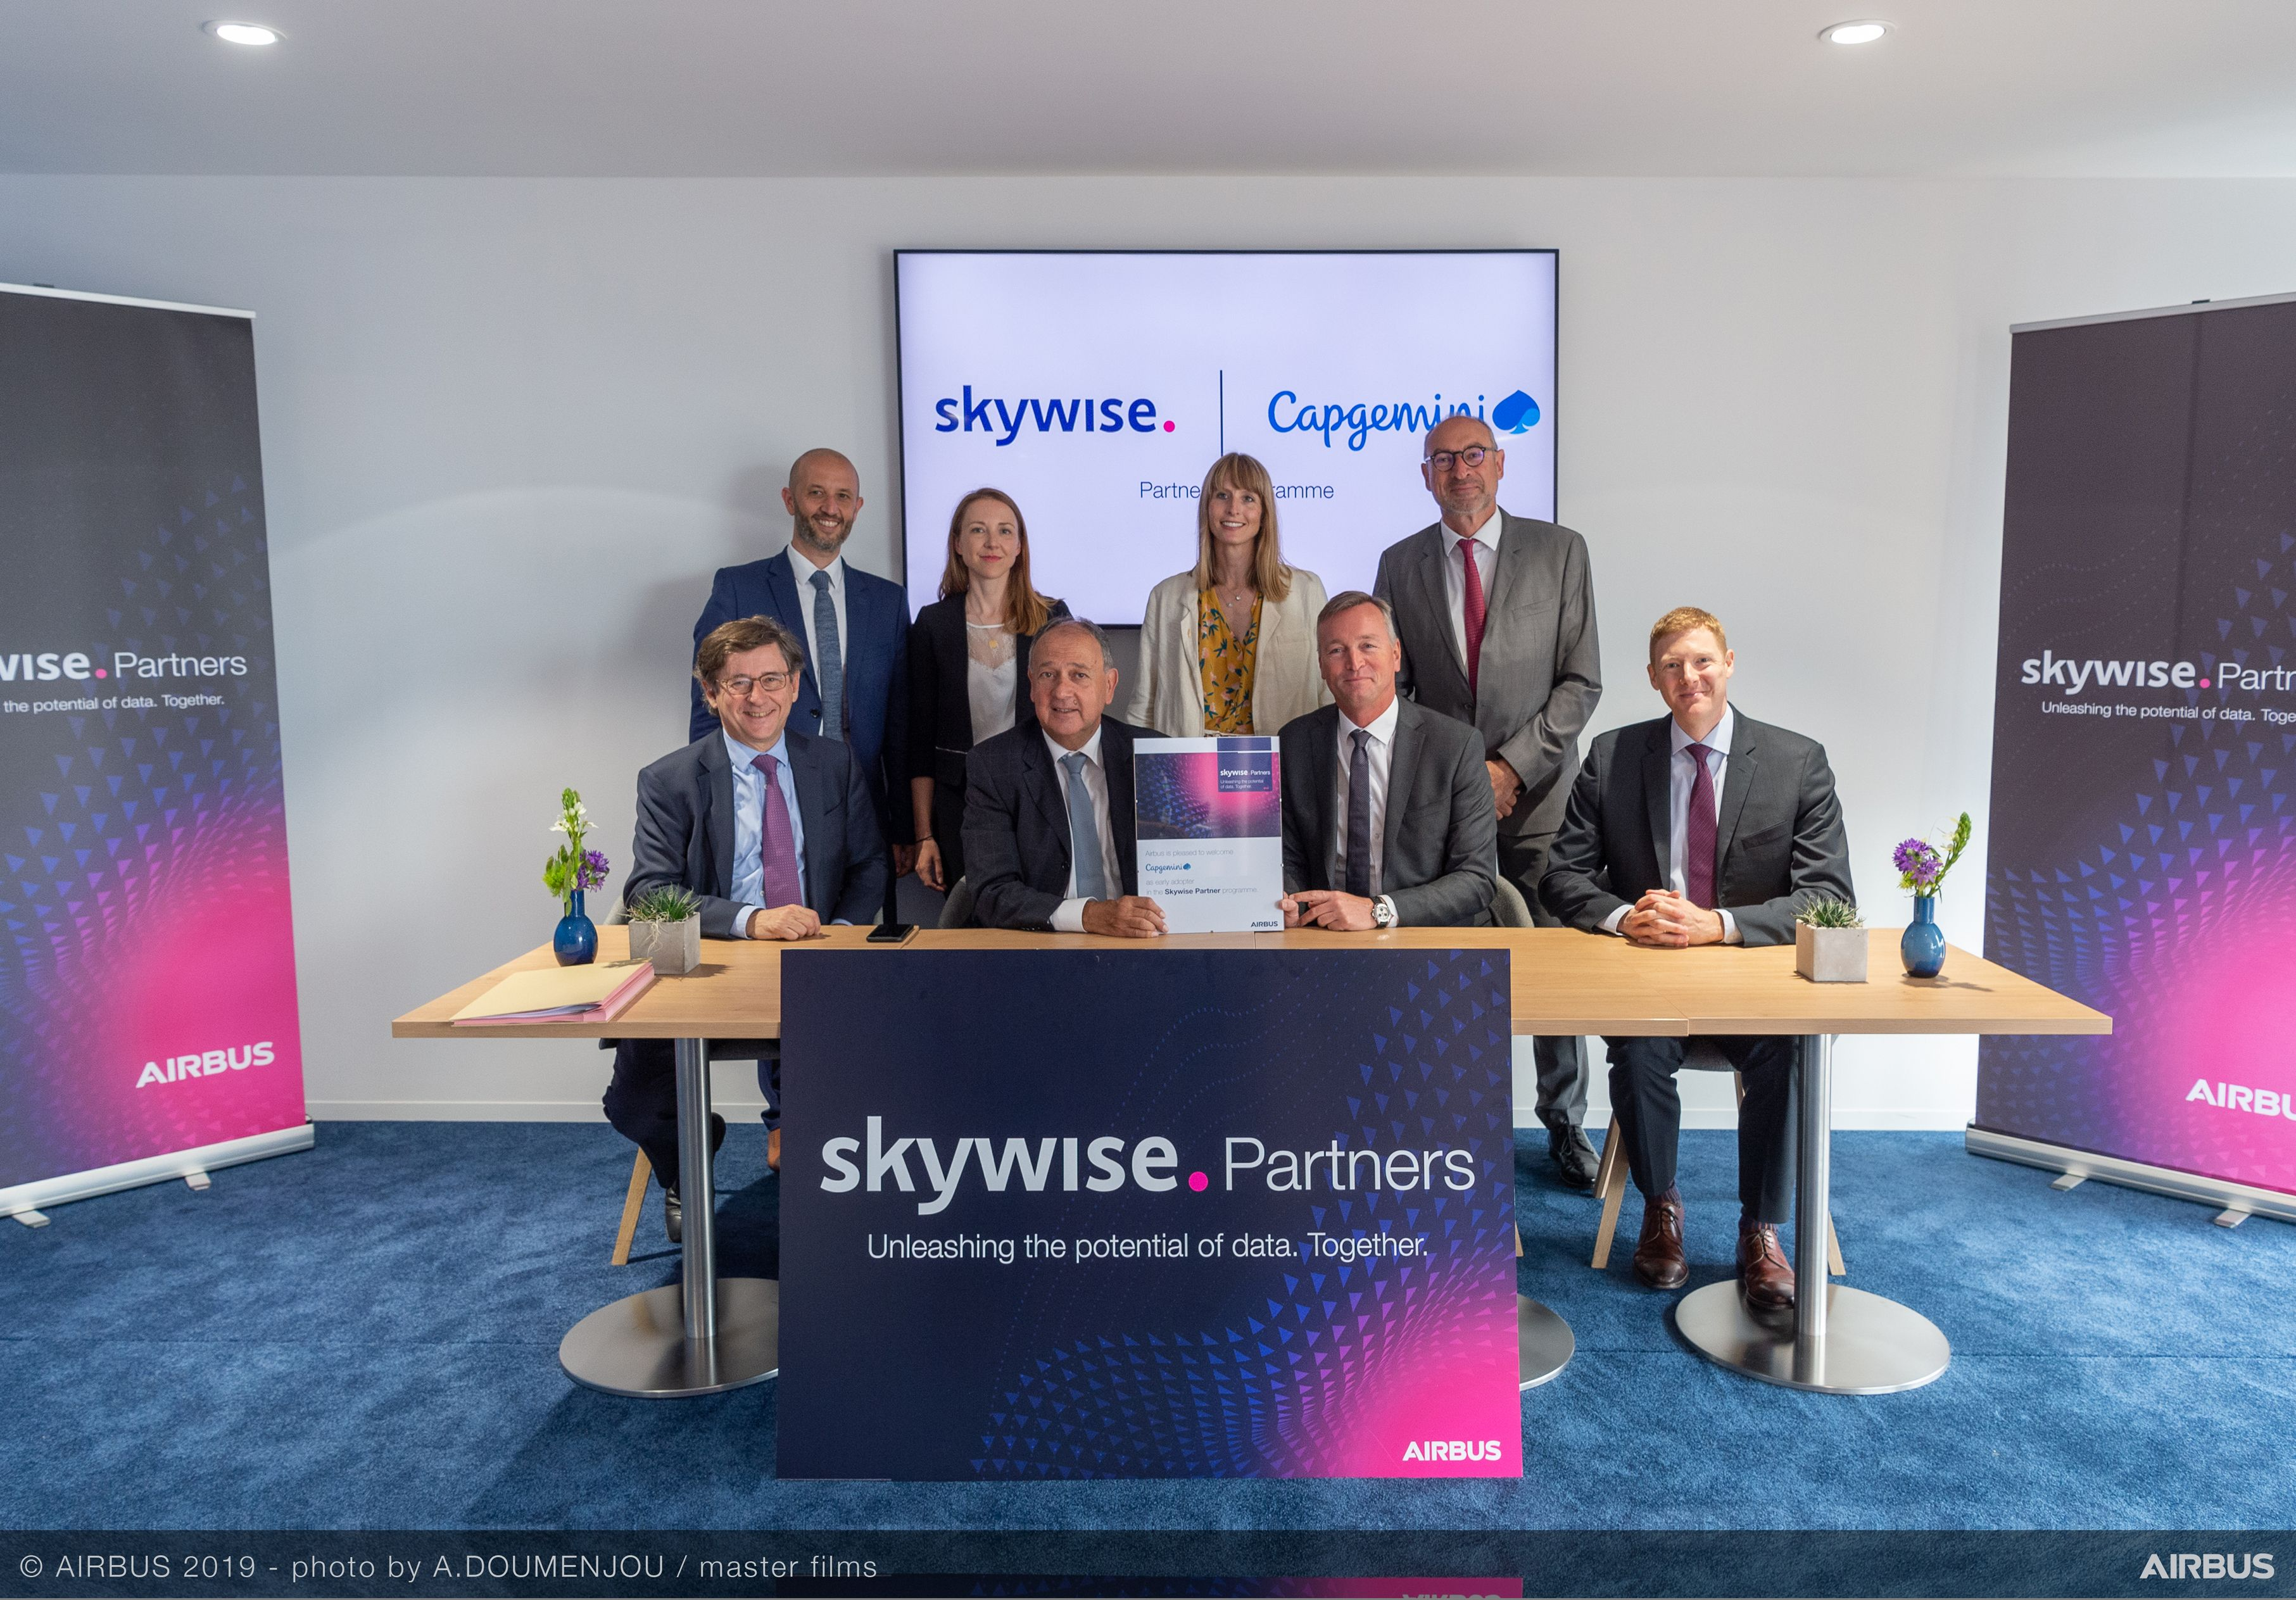 Airbus opens Skywise to global IT services leaders - 06